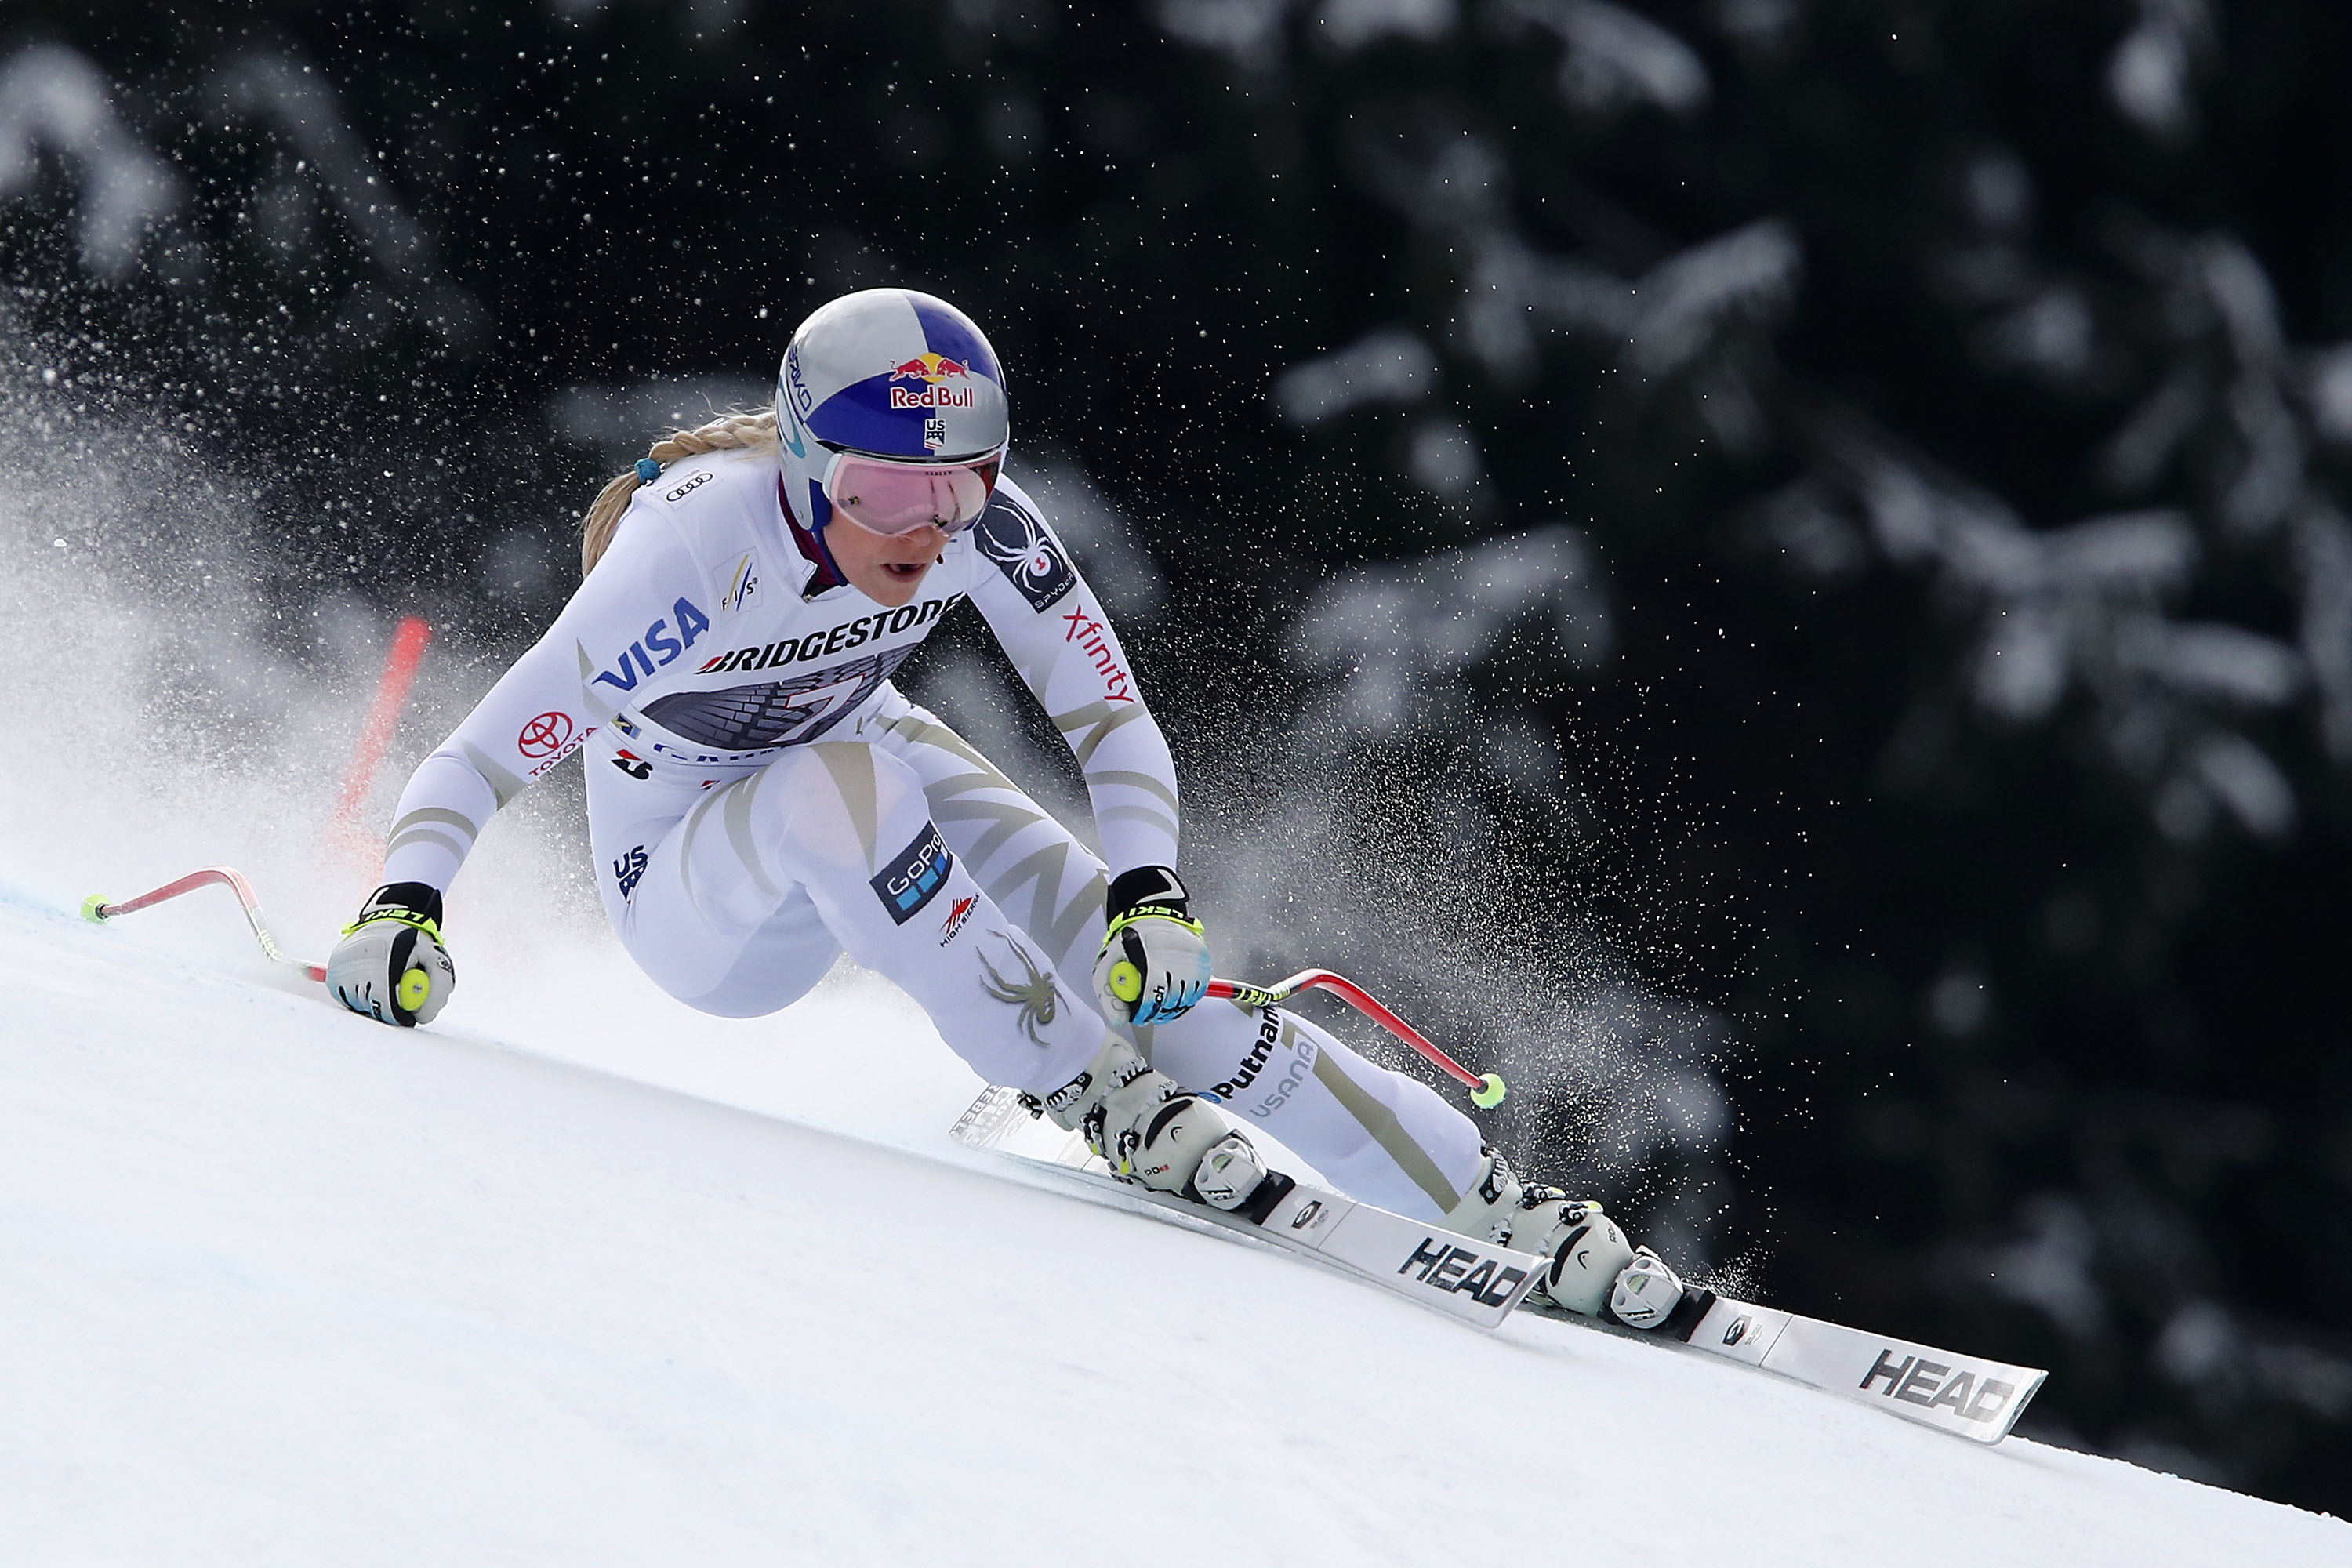 Photo: Lindsey Vonn World Cup Downhill Garmisch Partenkirchen Germany